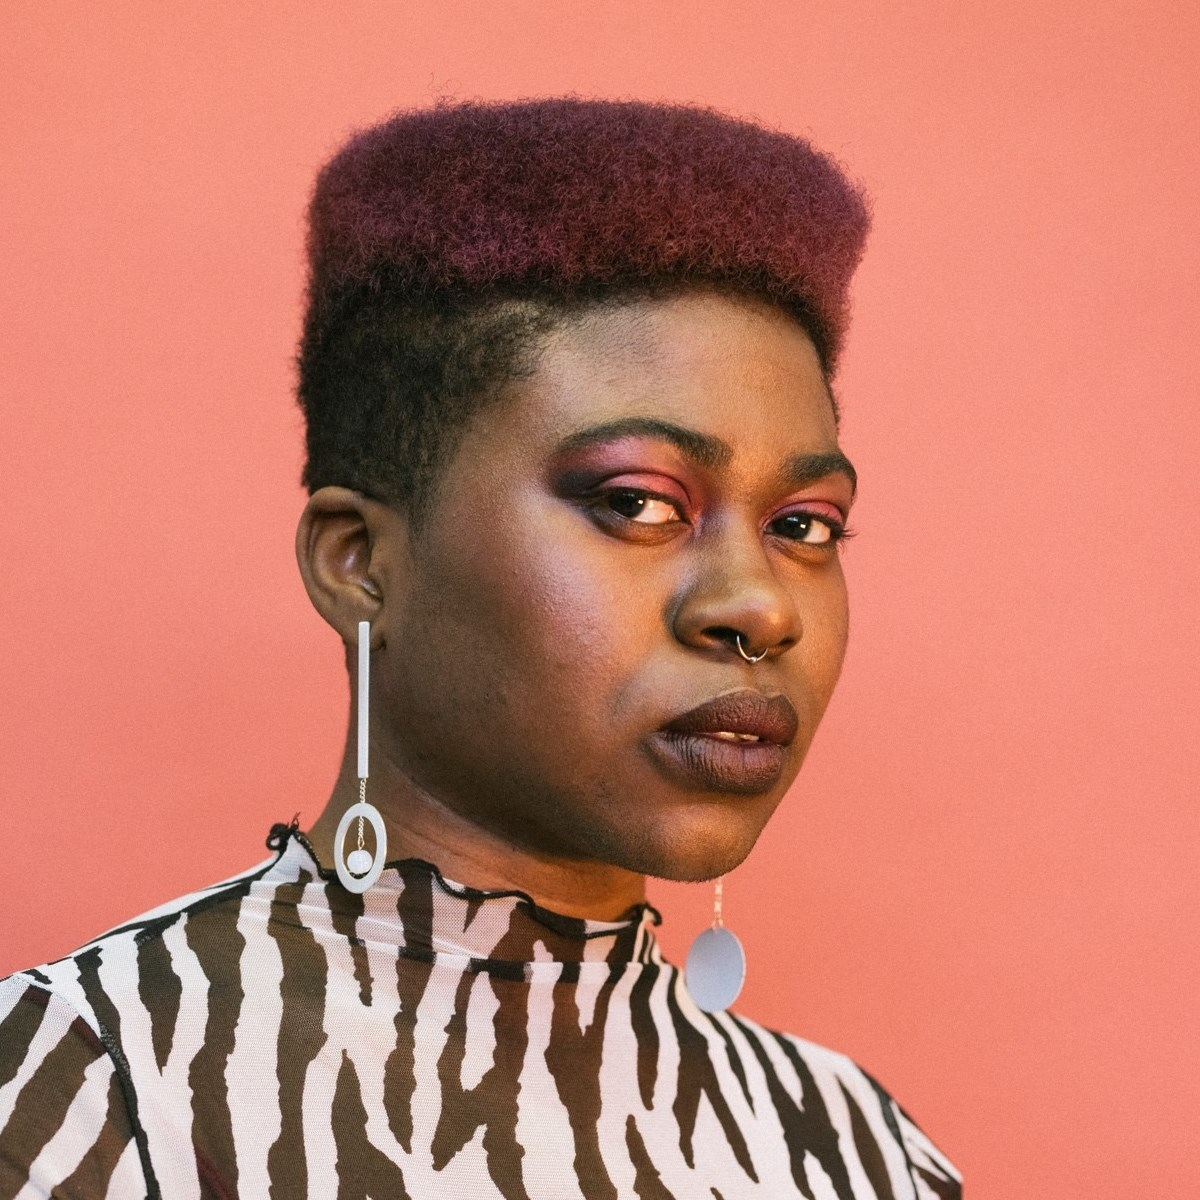 DEE DIGGS - TECH STARTUP SHOWCASE | NEW YORKA DJ, event curator & organizer formerly working in Boston, MA and now based in Brooklyn, NY. She is unapologetically black, queer, & femme.➭ BOILER ROOM➭ DISCWOMAN MIX